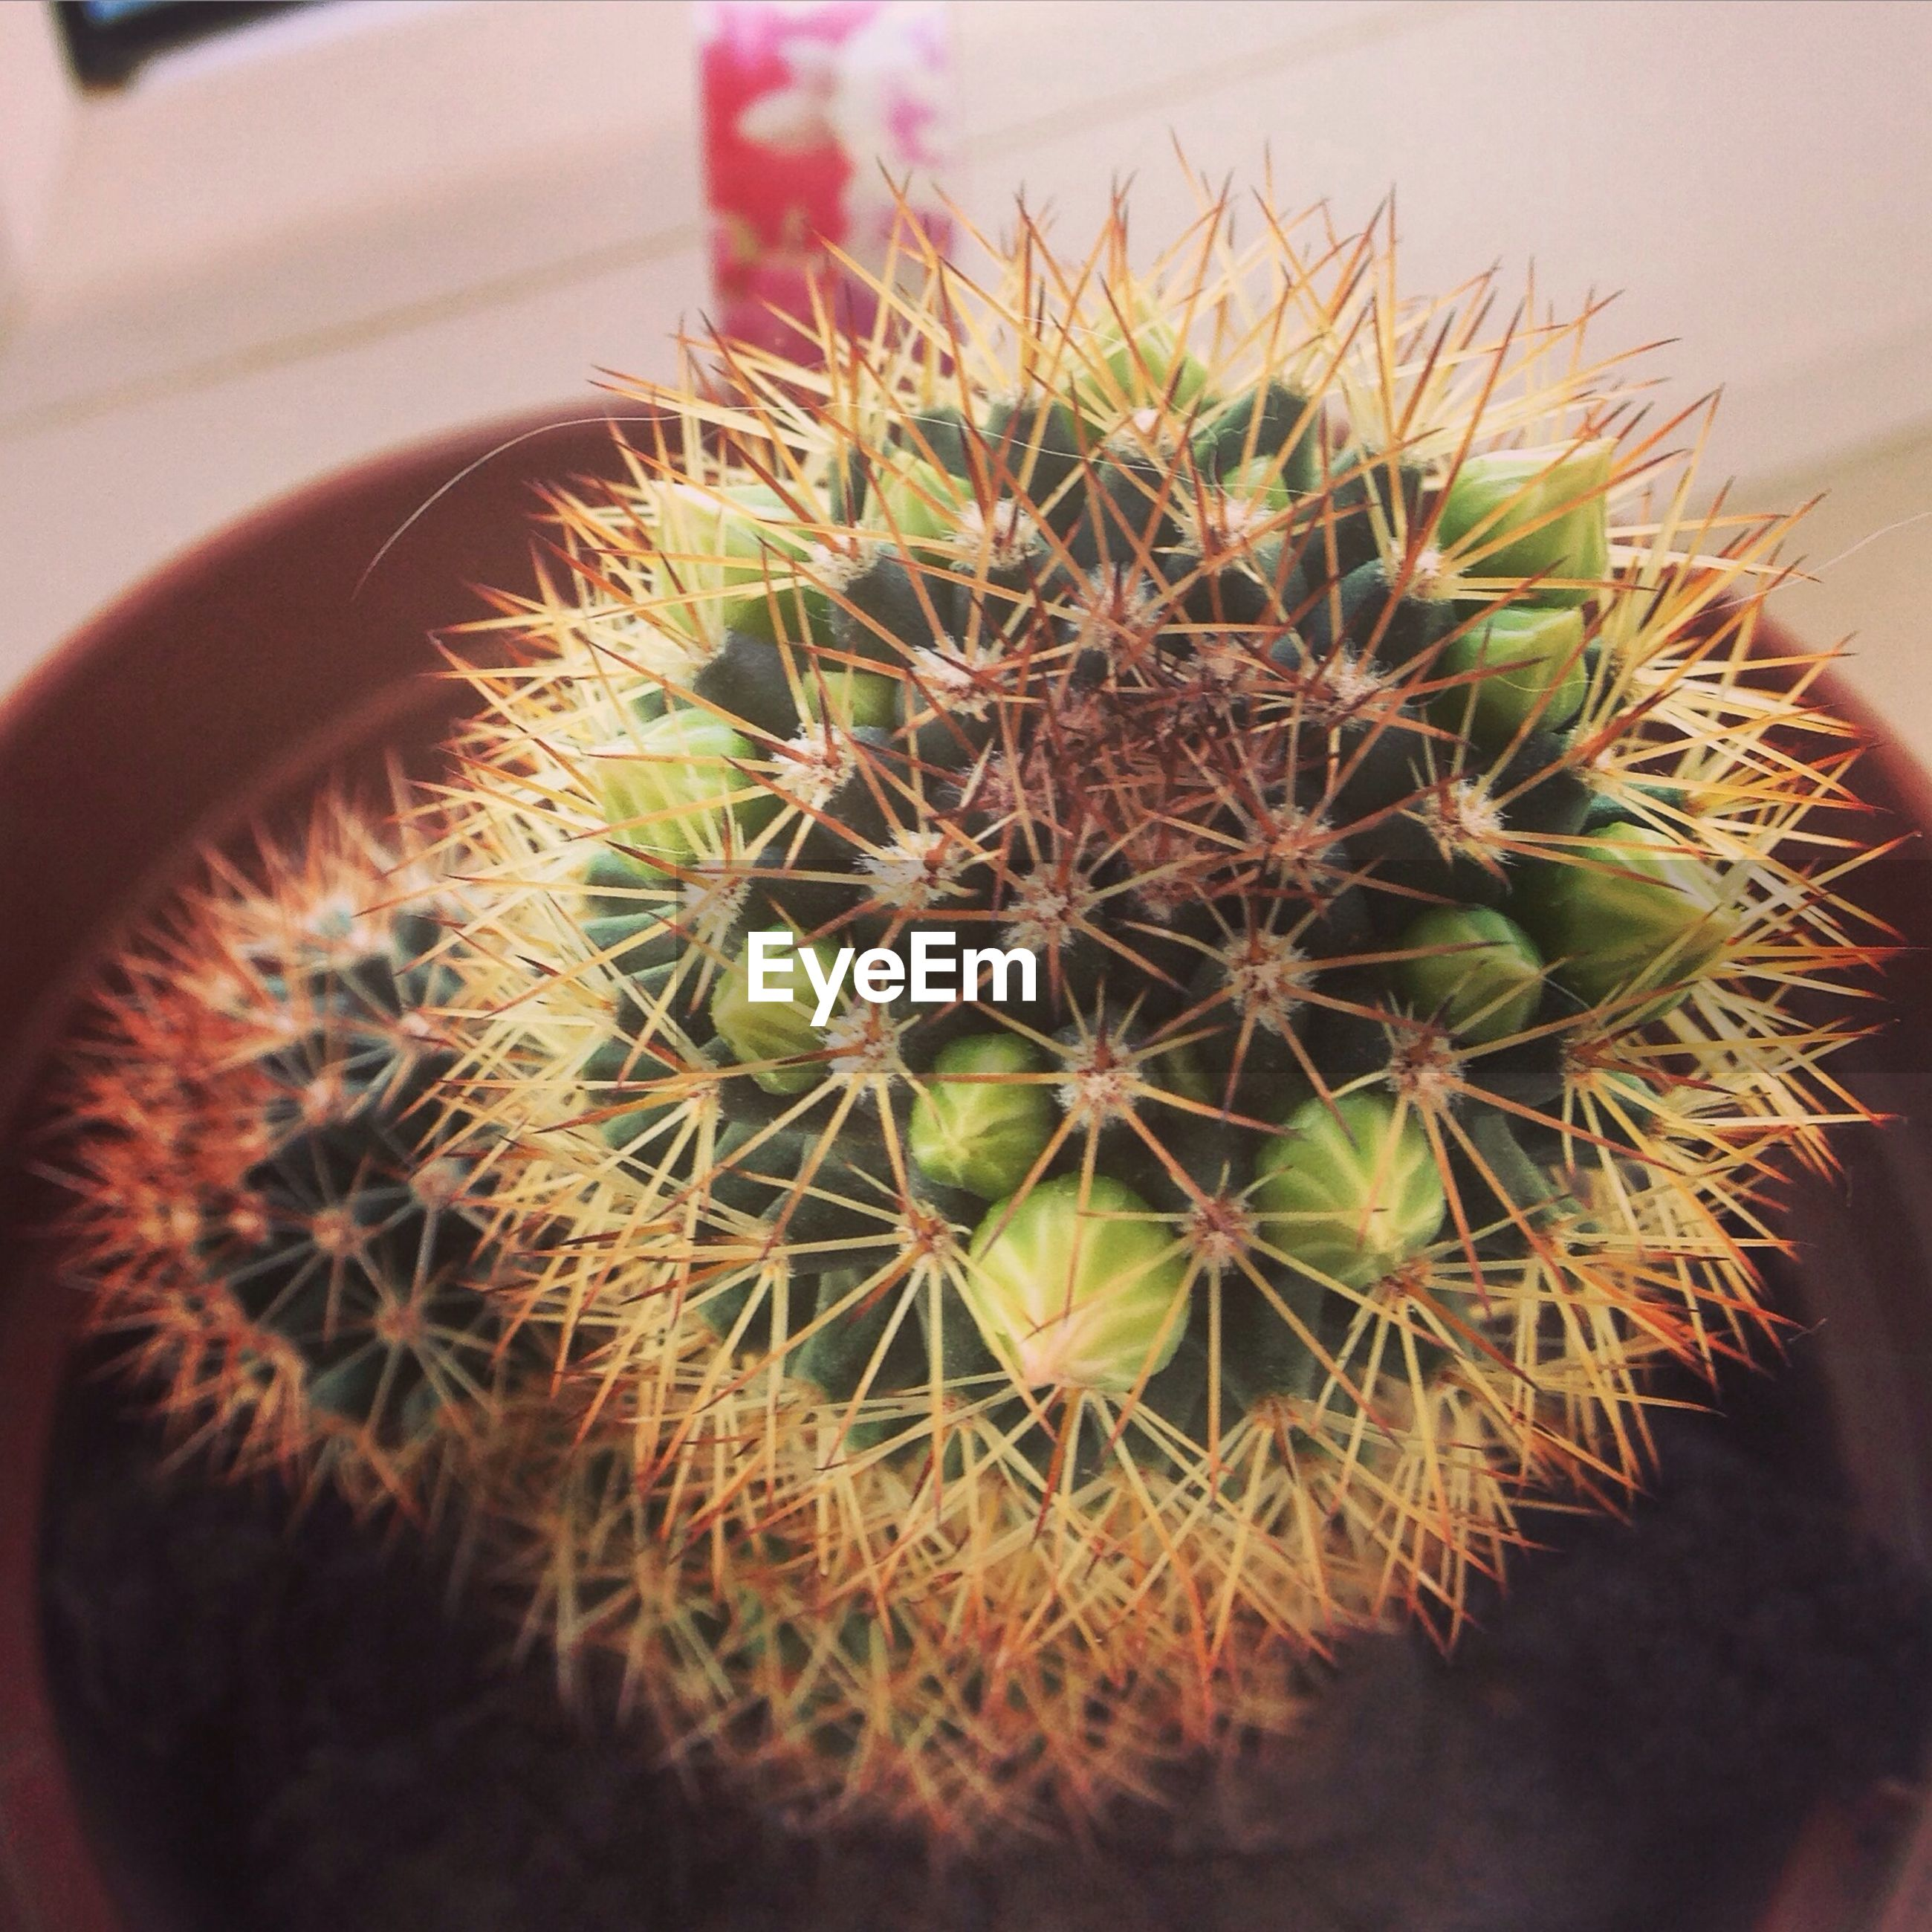 indoors, close-up, potted plant, plant, cactus, growth, freshness, high angle view, leaf, food and drink, spiked, thorn, healthy eating, no people, food, selective focus, nature, focus on foreground, green color, still life